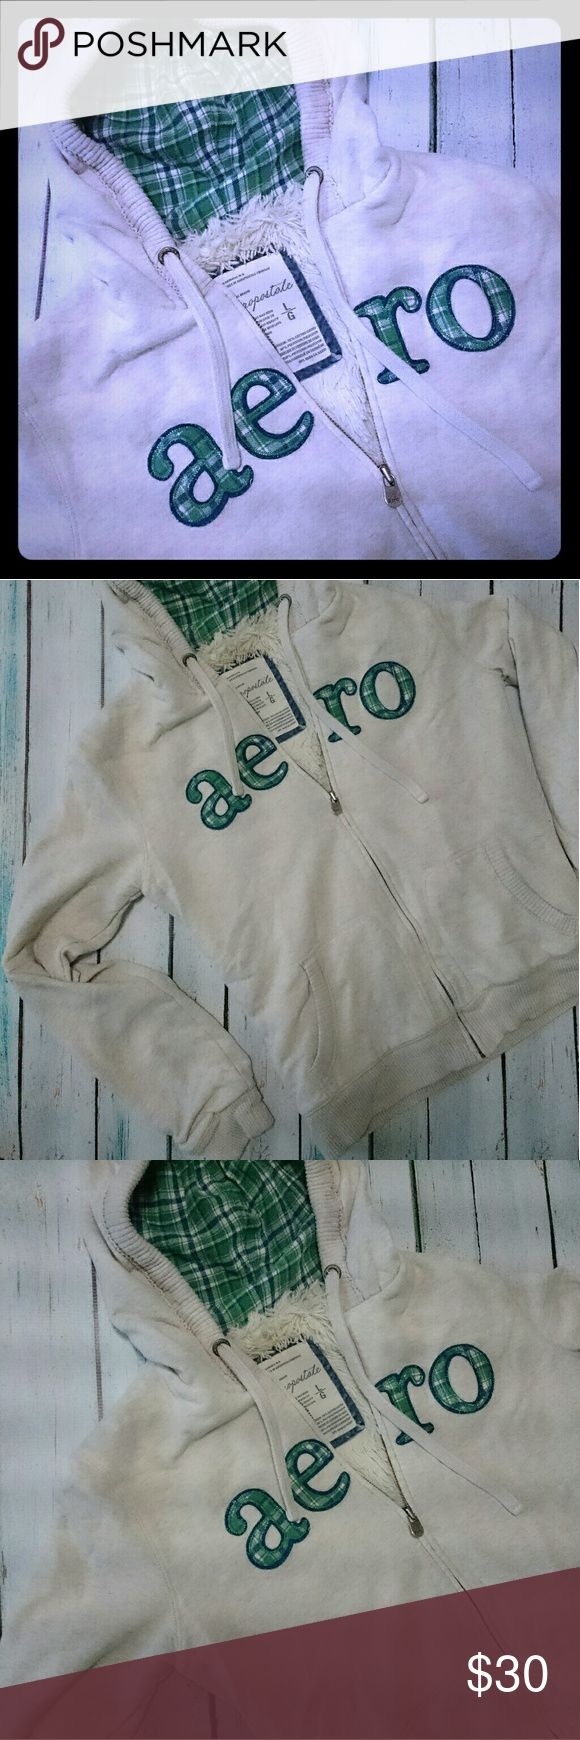 """Aero Zip Up Hoodie Very thick and warm, faux fur hoodie from Aeropostale. Oatmeal/beige with green plaid """"Aero"""" on front and green plaid on the inside of the hood. Full zip. EUC. No flaws or stains. Aeropostale Tops Sweatshirts & Hoodies"""